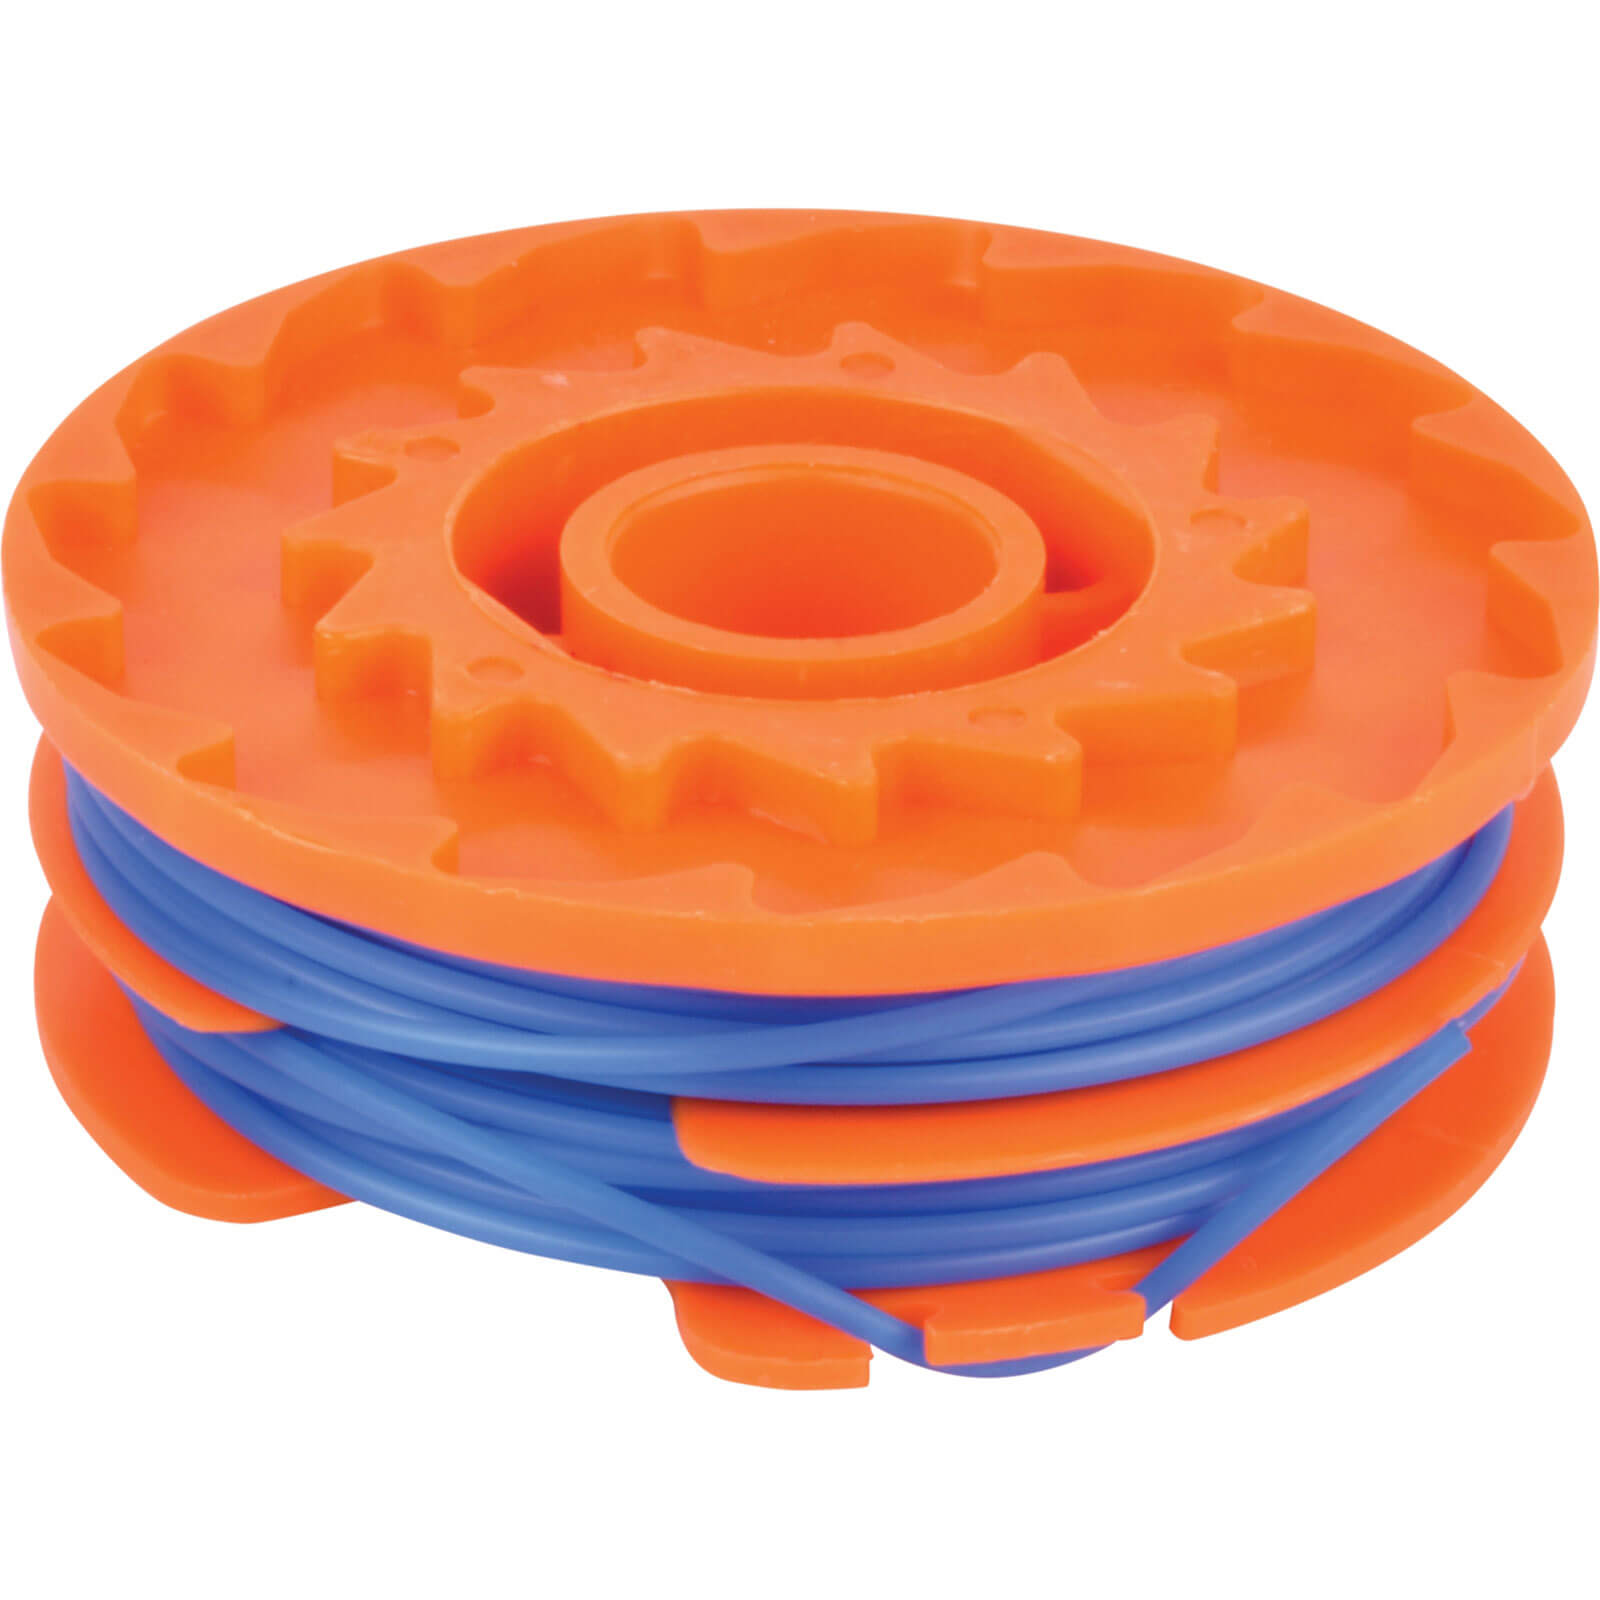 Image of ALM 1.5mm x 5m Spool & Line for Various Qualcast Grass Trimmers Pack of 1